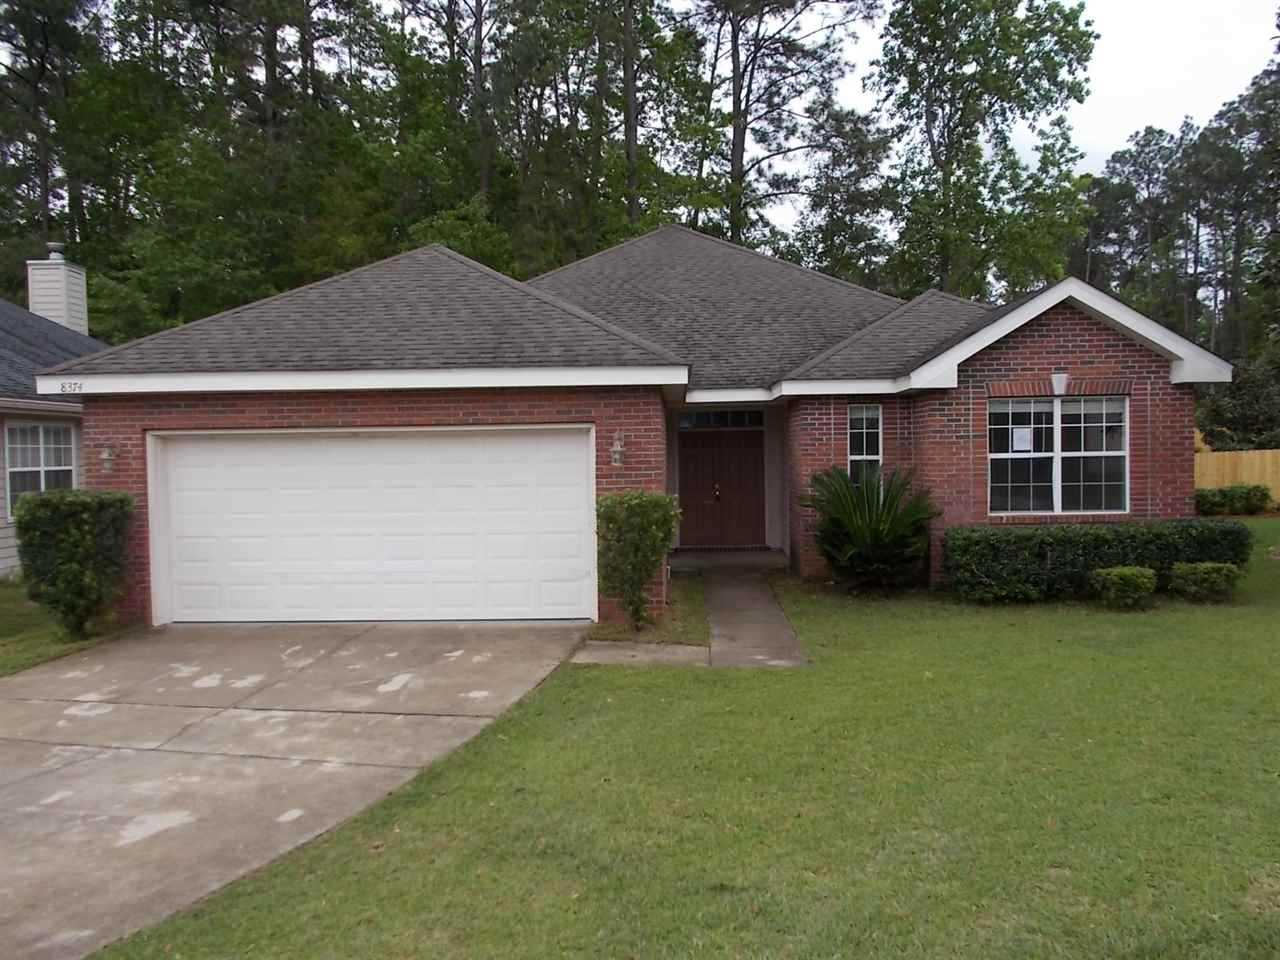 8374 Ivy Mill Way Tallahassee, FL 32312 in Sable Chase Photo 1